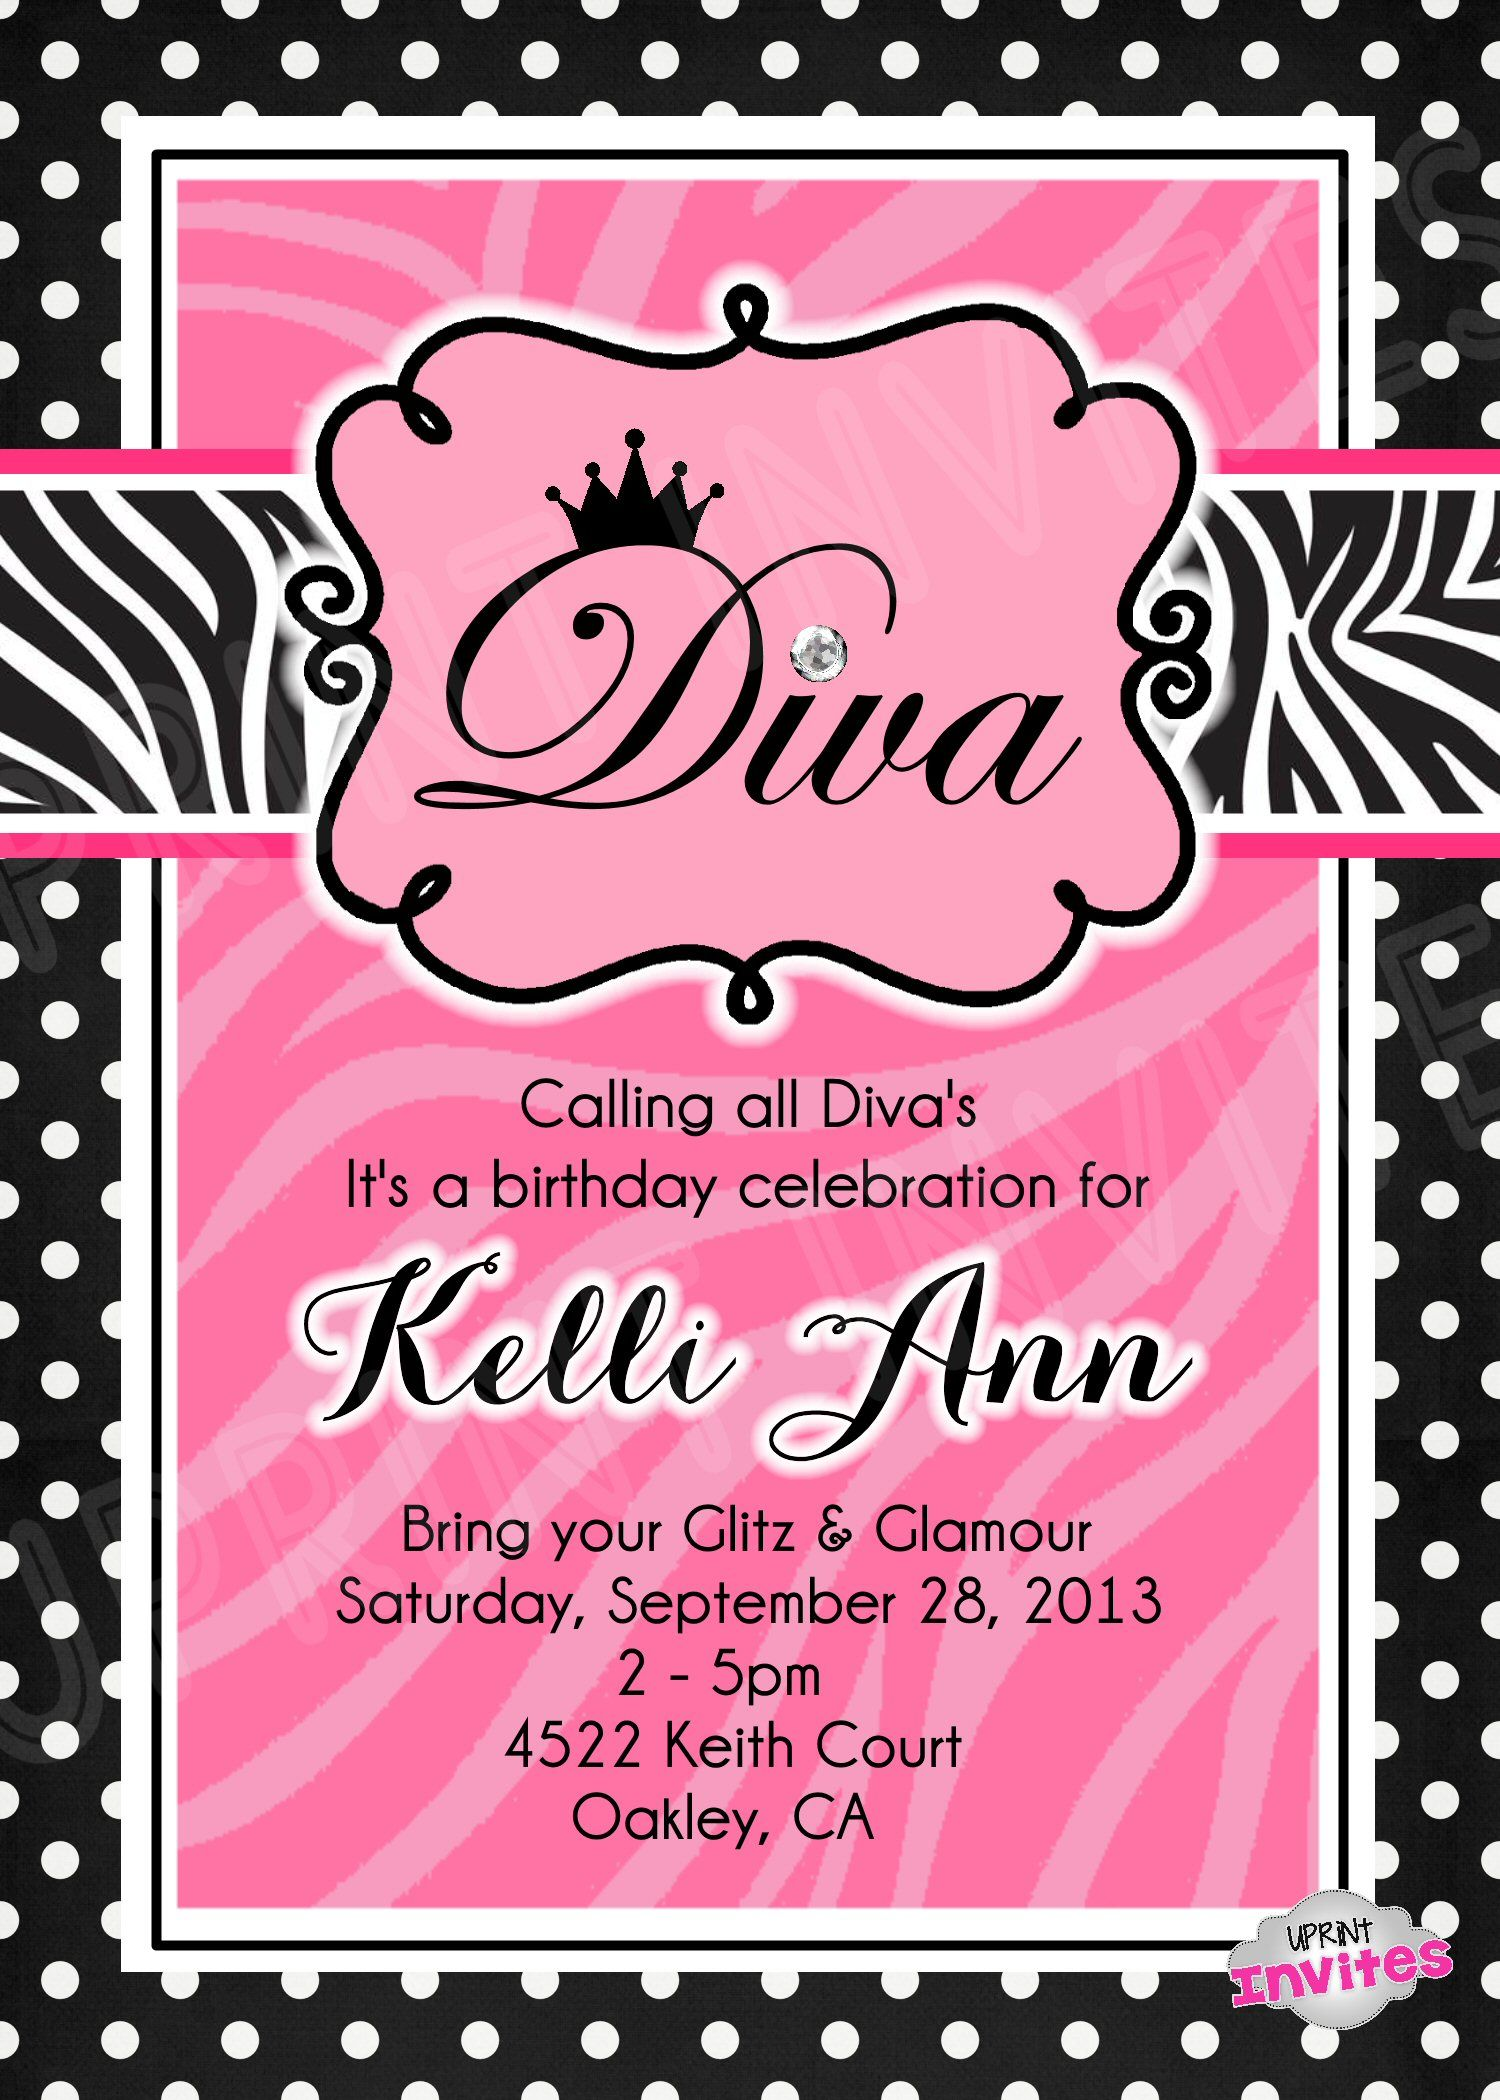 Diva Invitation Template $15.00 www.facebook.com/uprintinvitations ...